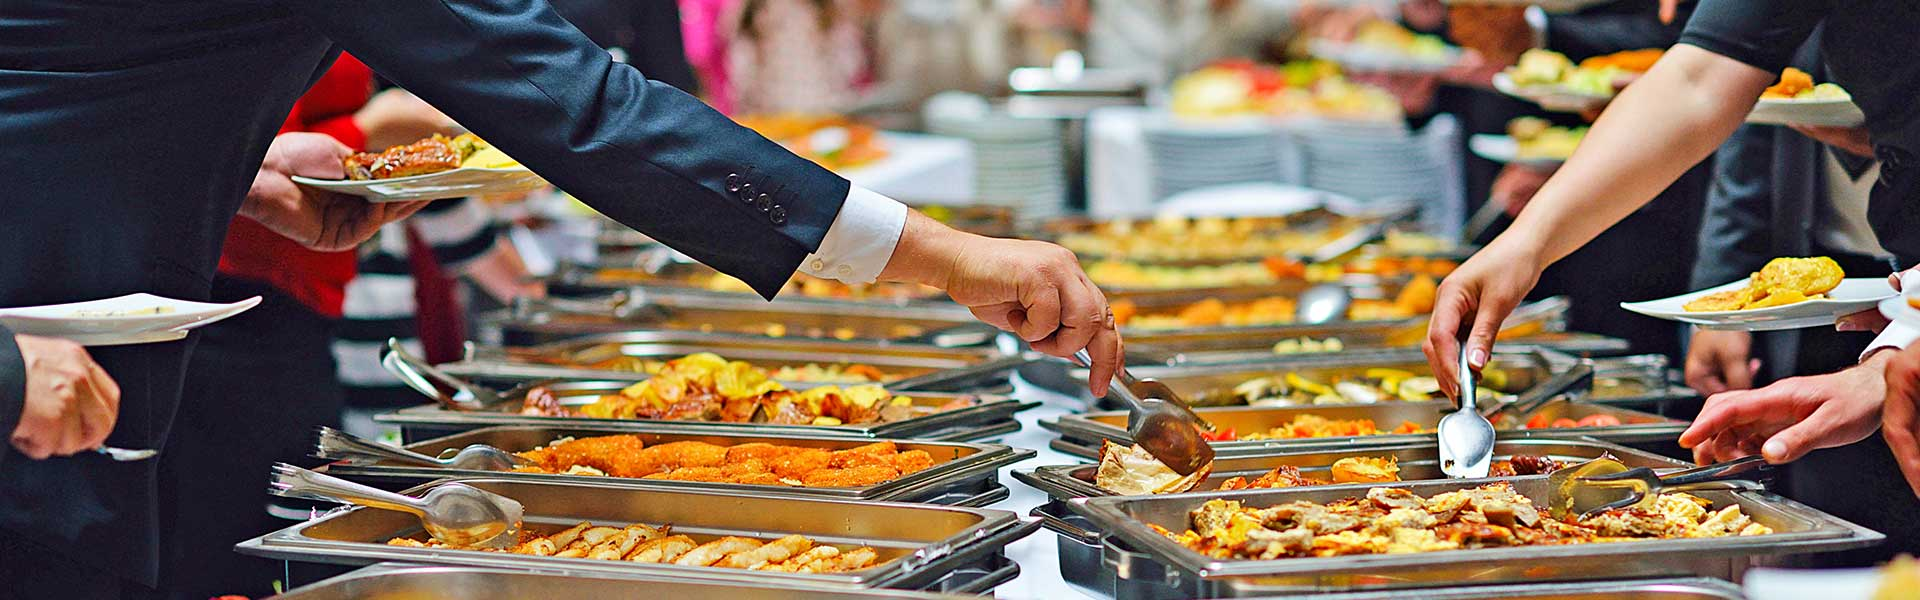 Buffet style catering image showing chaffing disshes